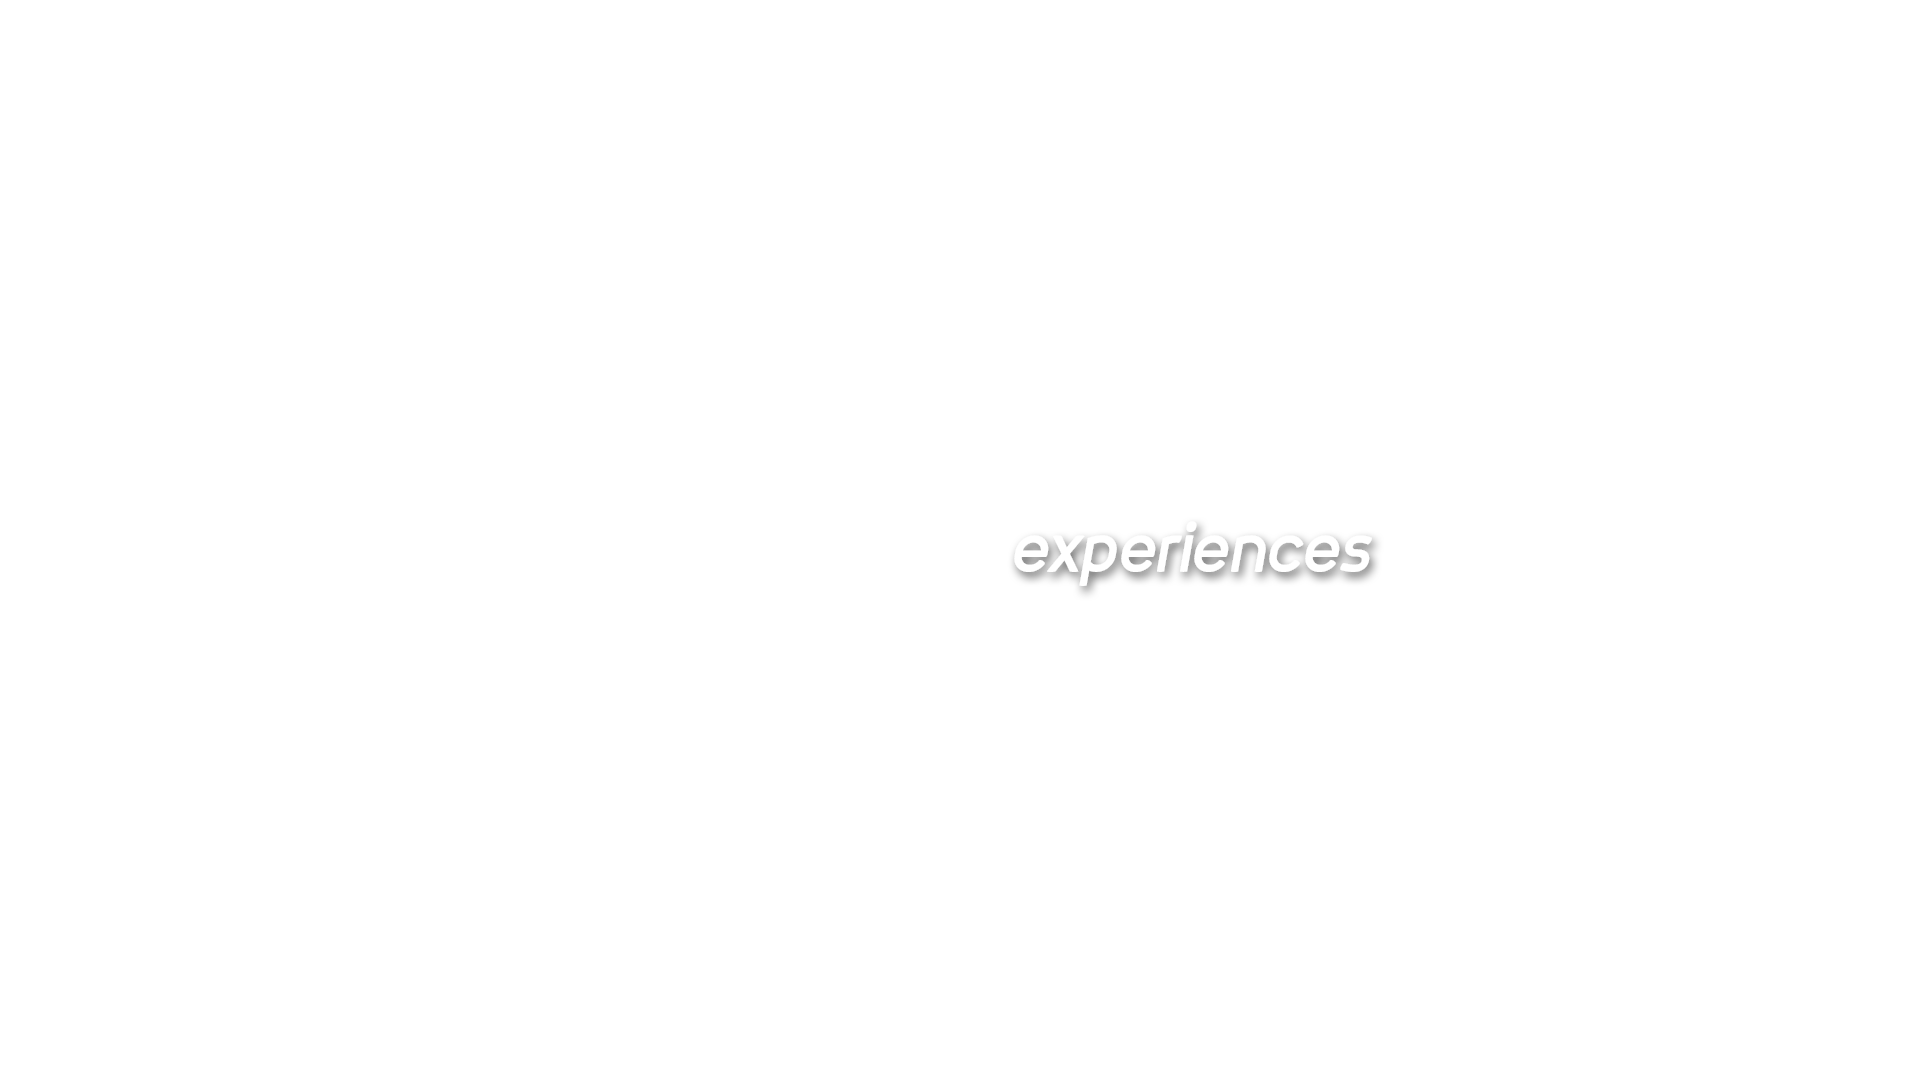 Experiences text